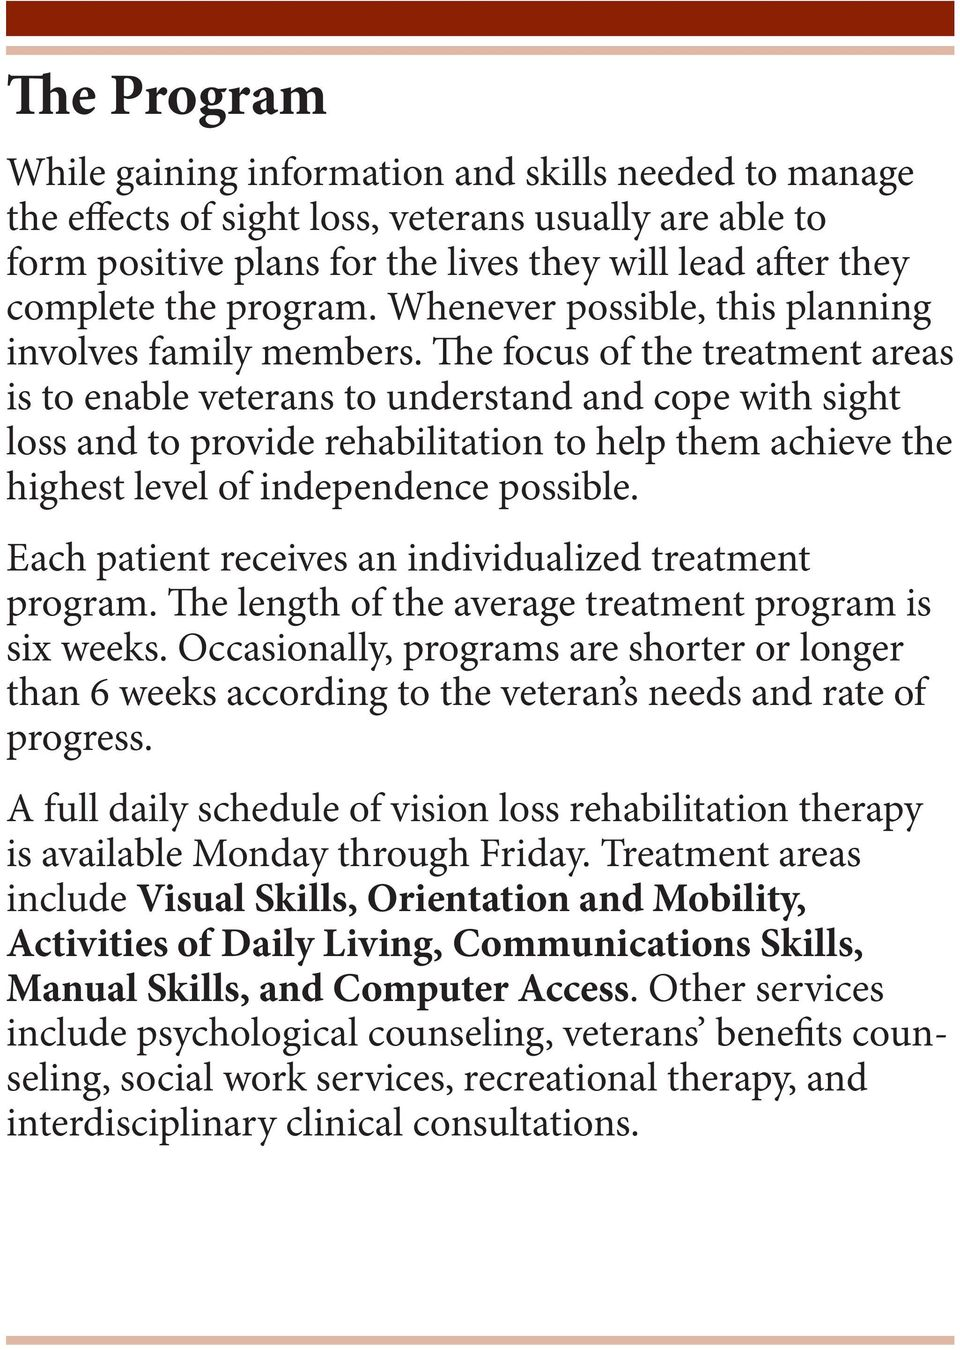 The focus of the treatment areas is to enable veterans to understand and cope with sight loss and to provide rehabilitation to help them achieve the highest level of independence possible.